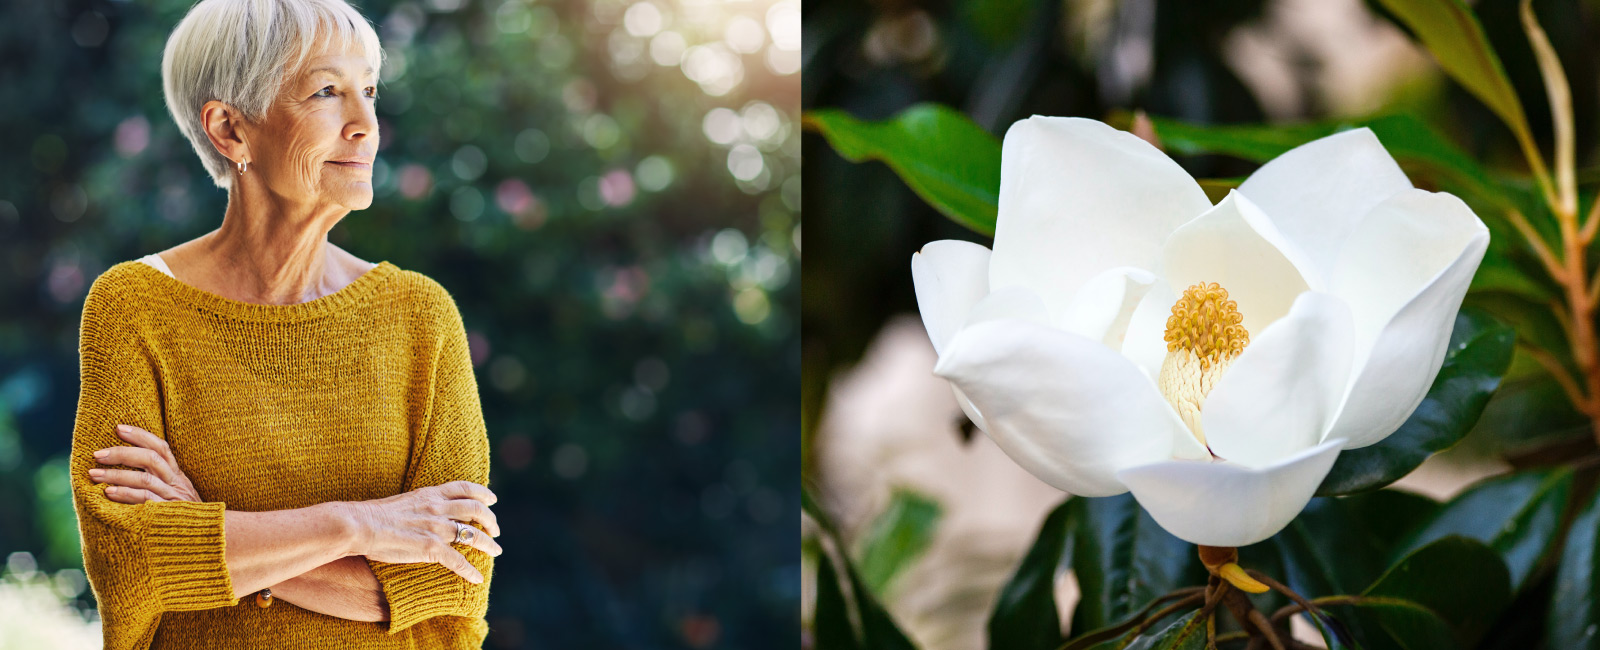 At left: woman looking to the right. At right: close up of a white flower.